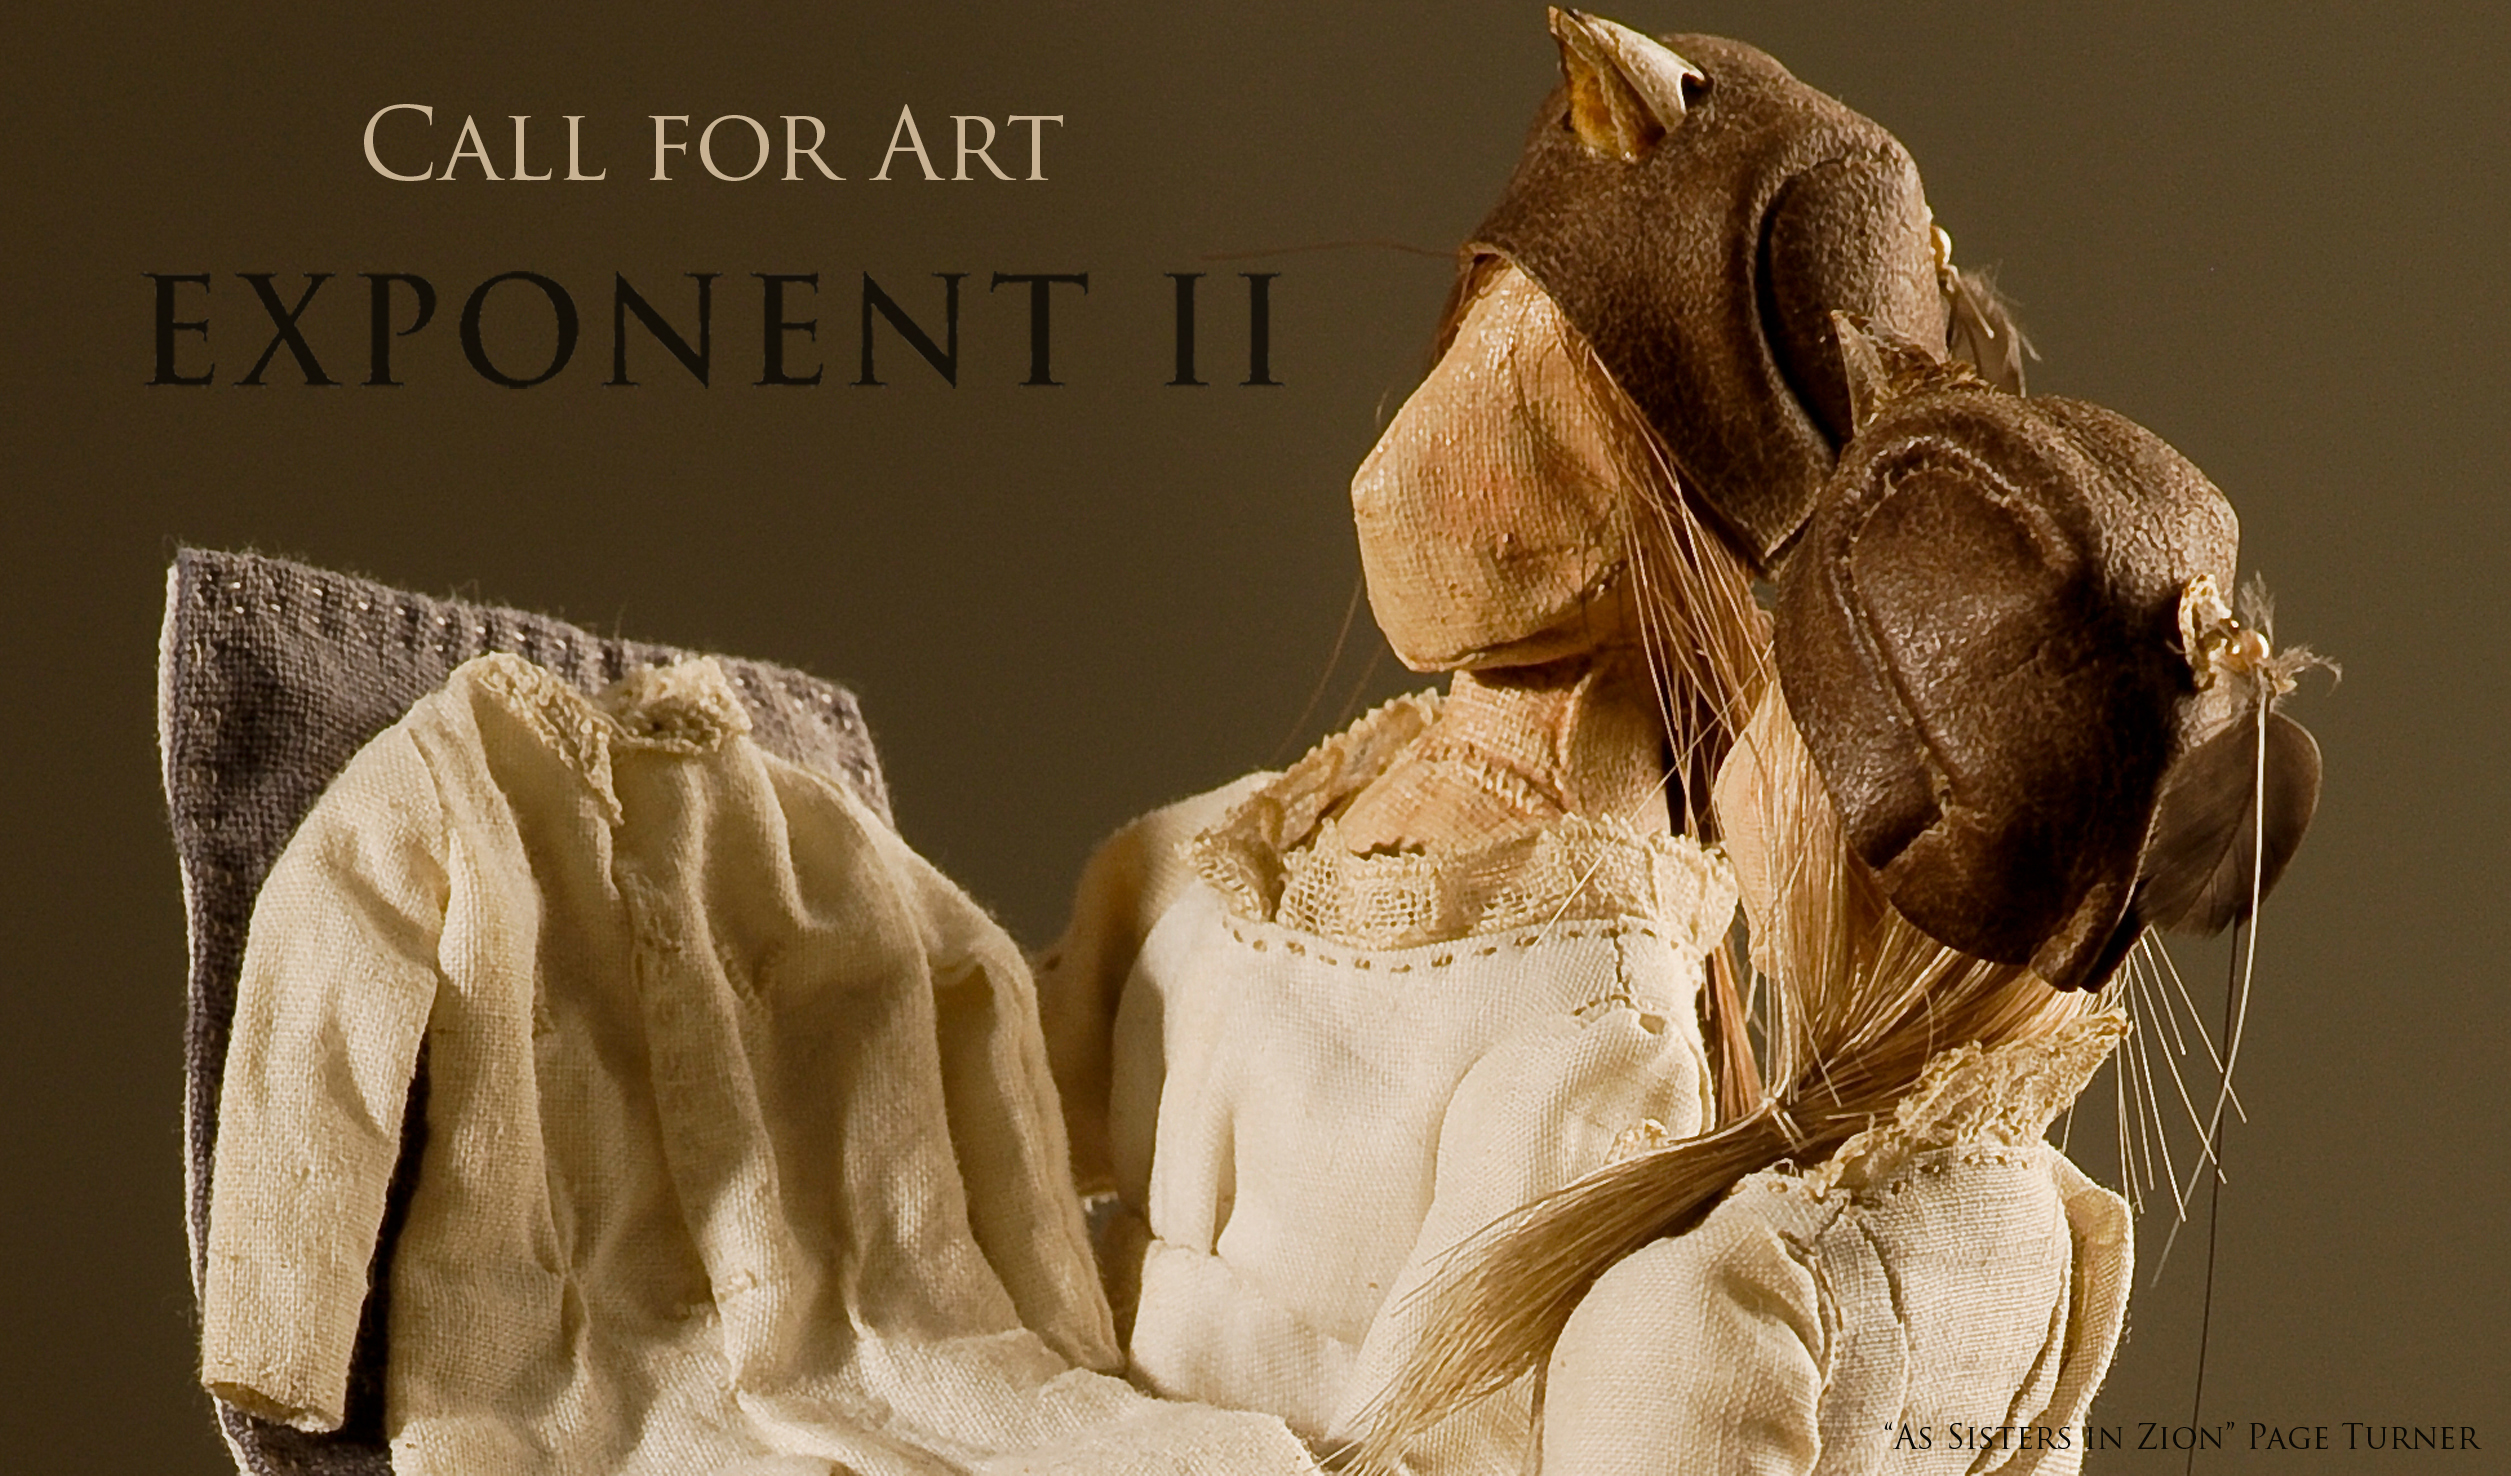 Exponent_CALL FOR ART_P&R